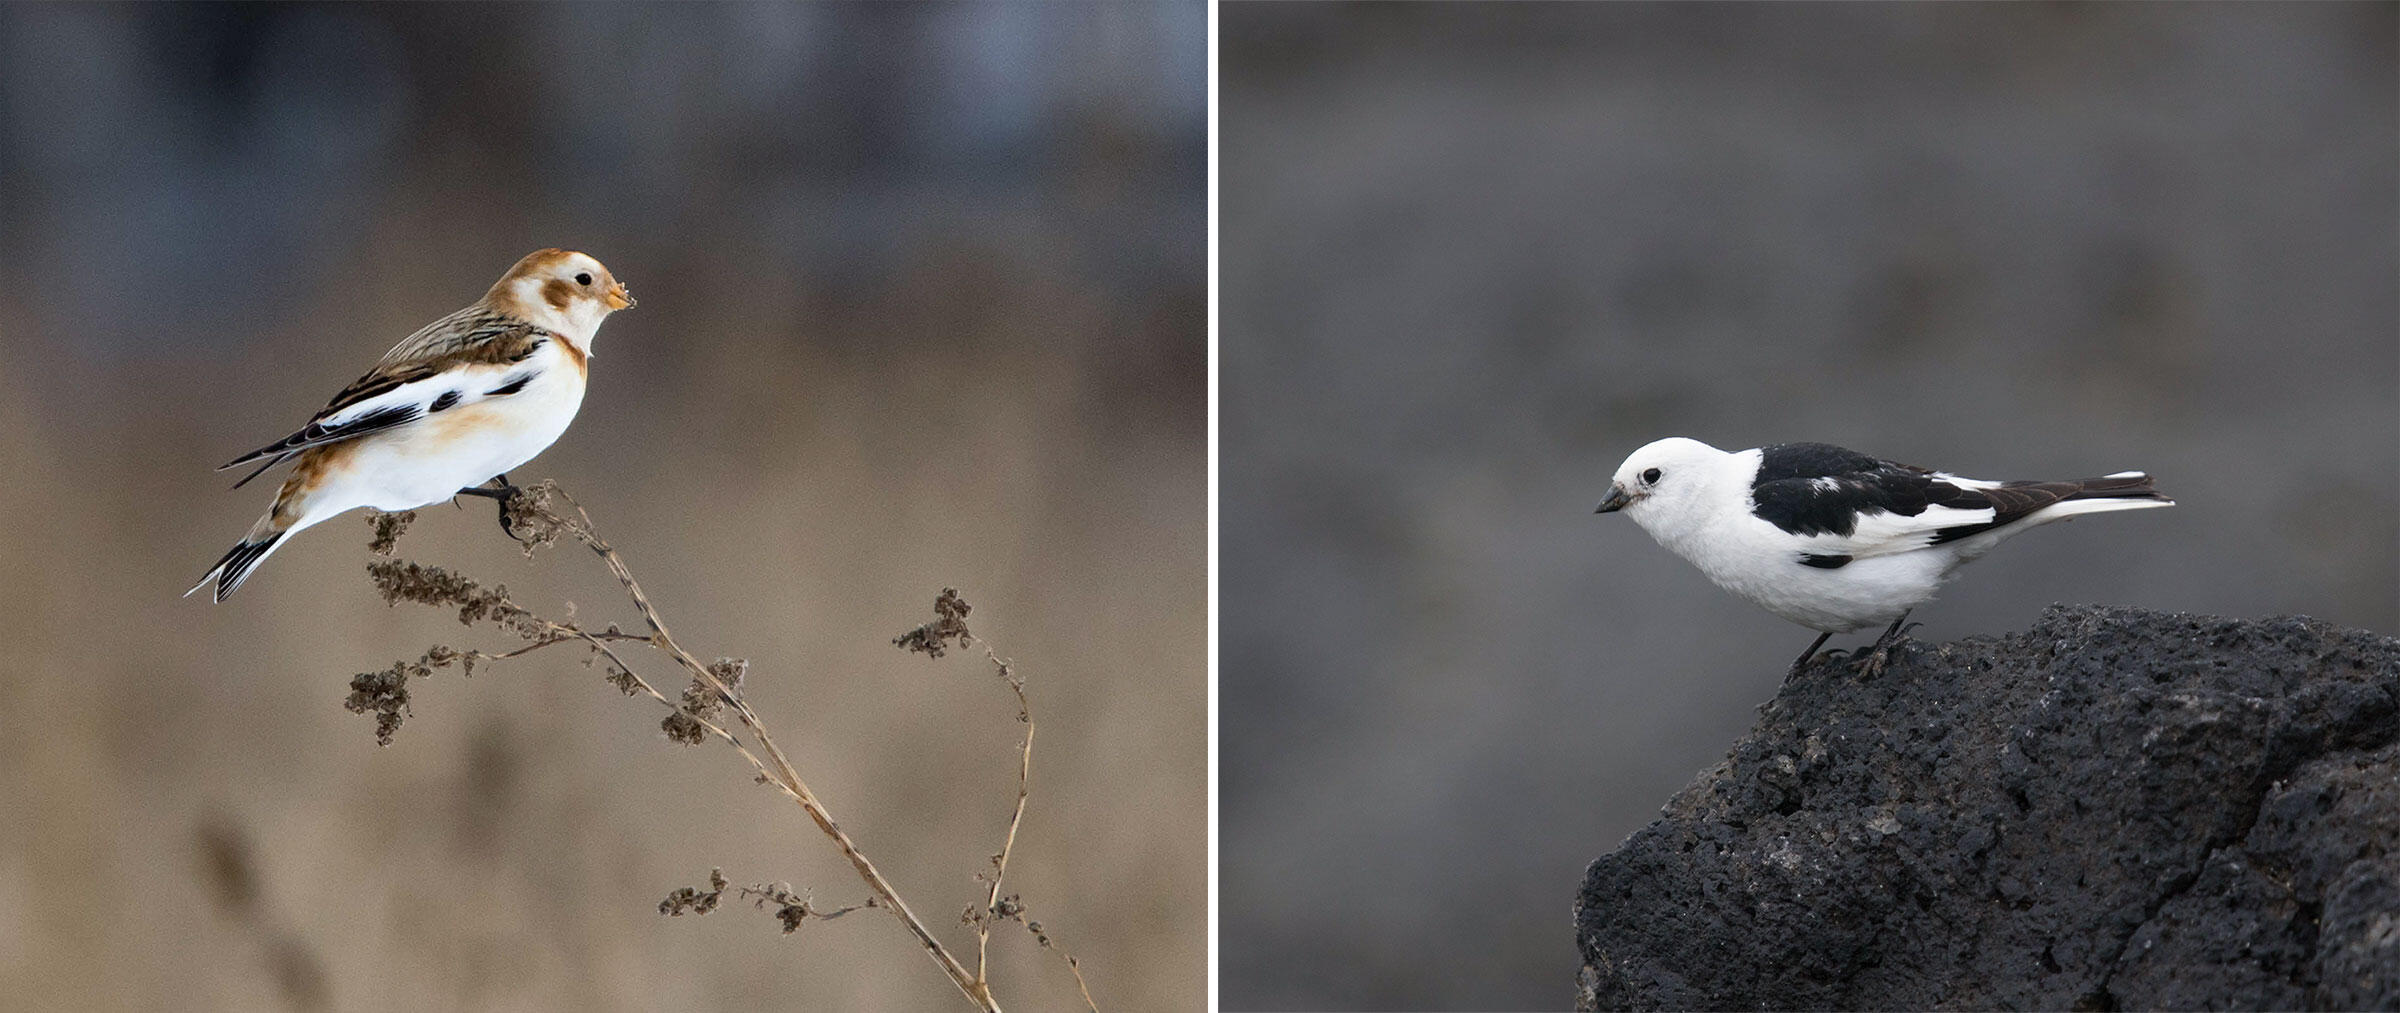 Snow Buntings in winter (left) and summer (right) plumage. Photos from left: Kent McFarland/Flickr (CC BY-NC 2.0); Aaron Budgor/Flickr (CC BY-NC-ND 2.0)